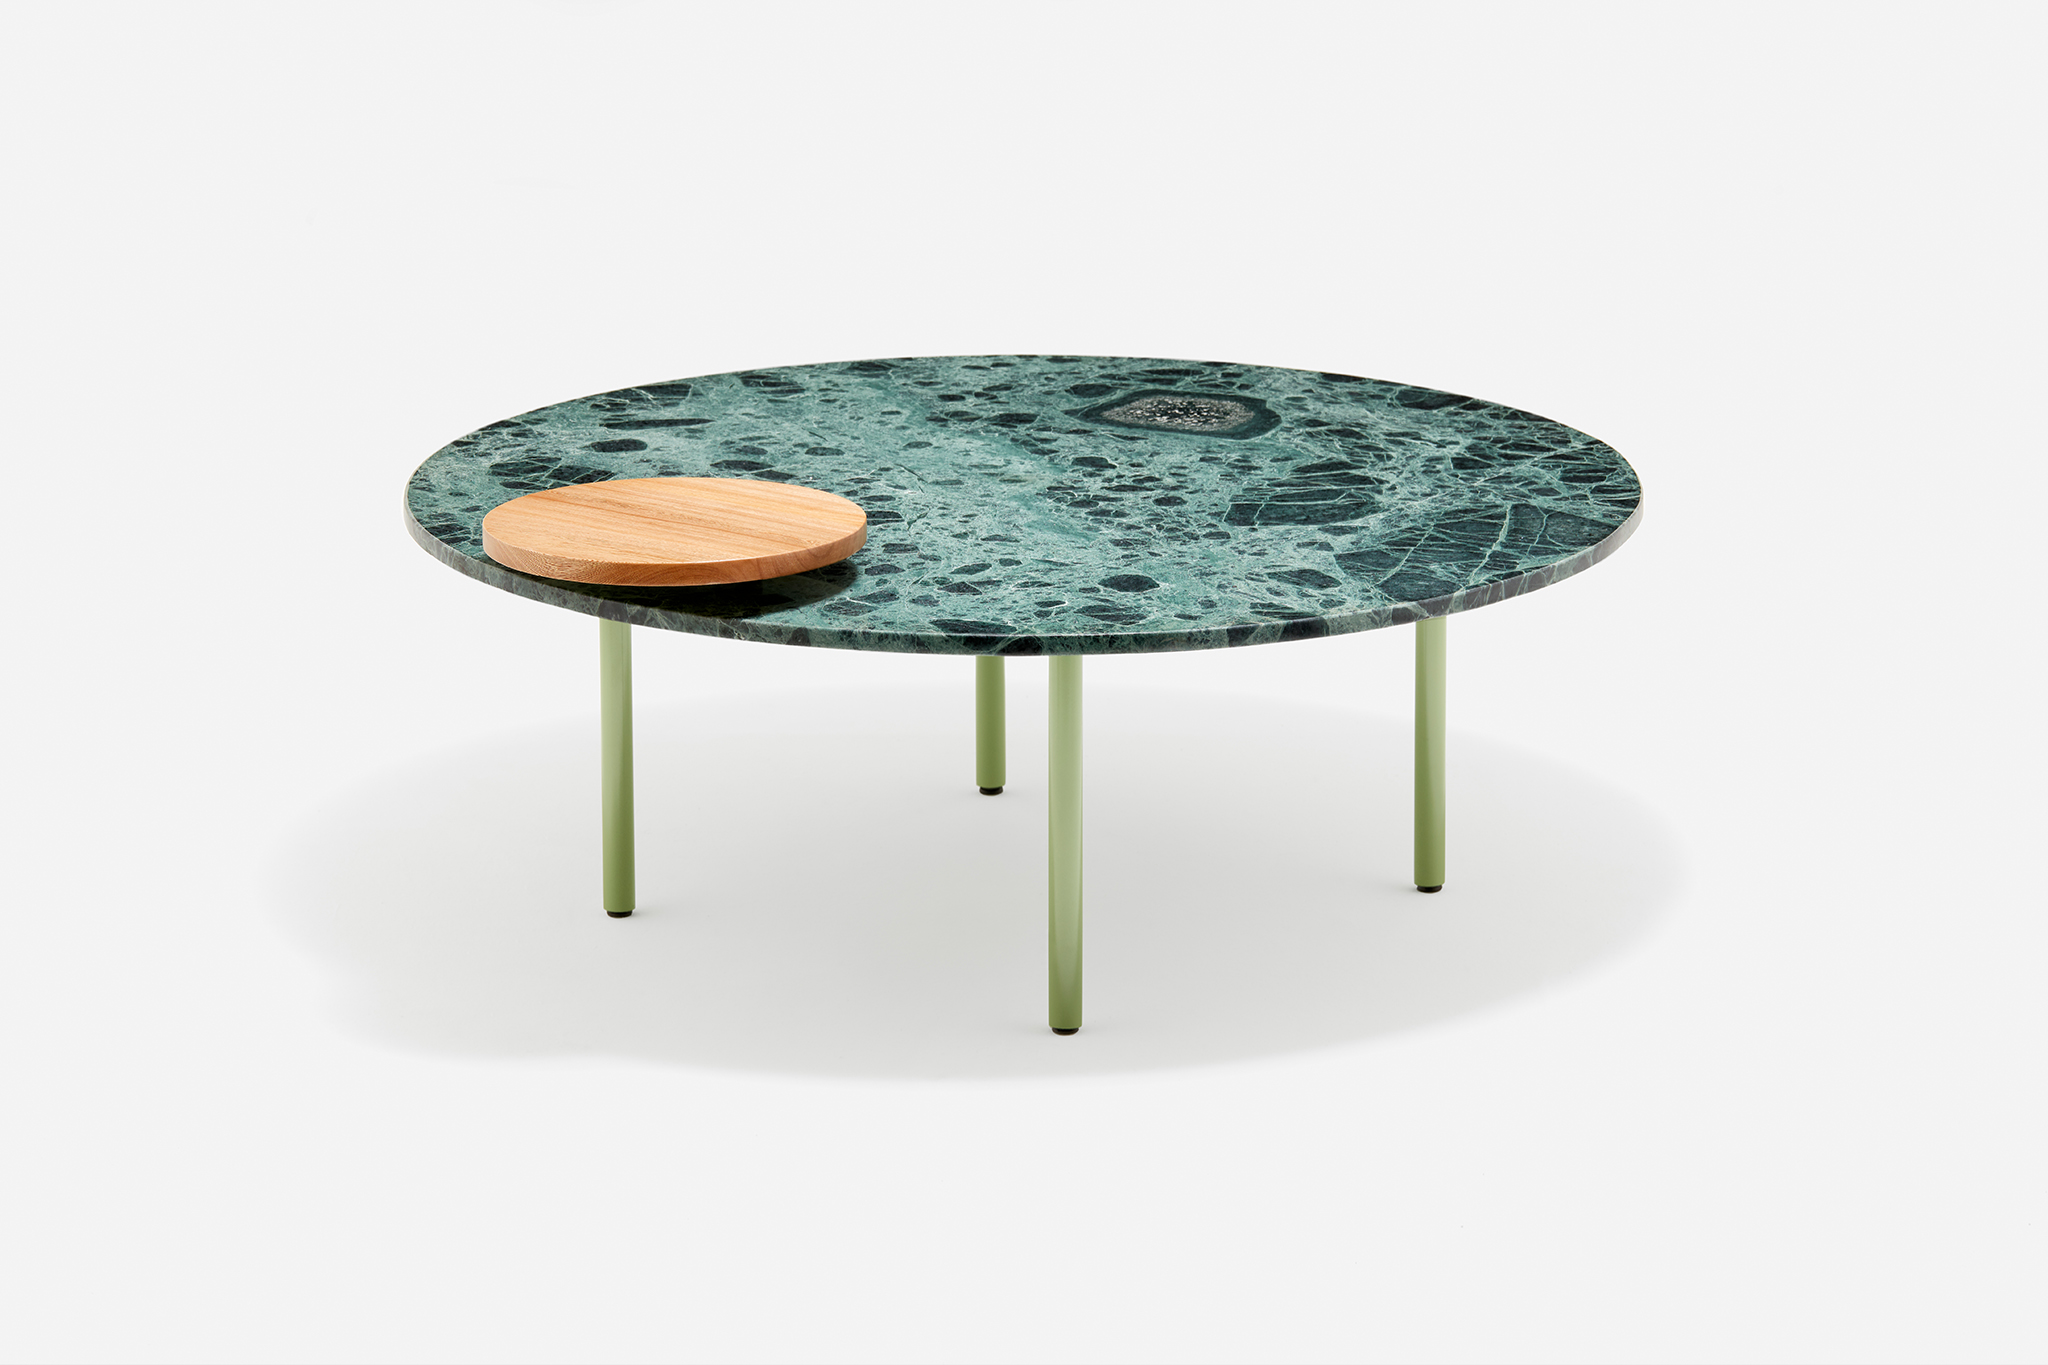 The WW coffee table from the Loos collection.